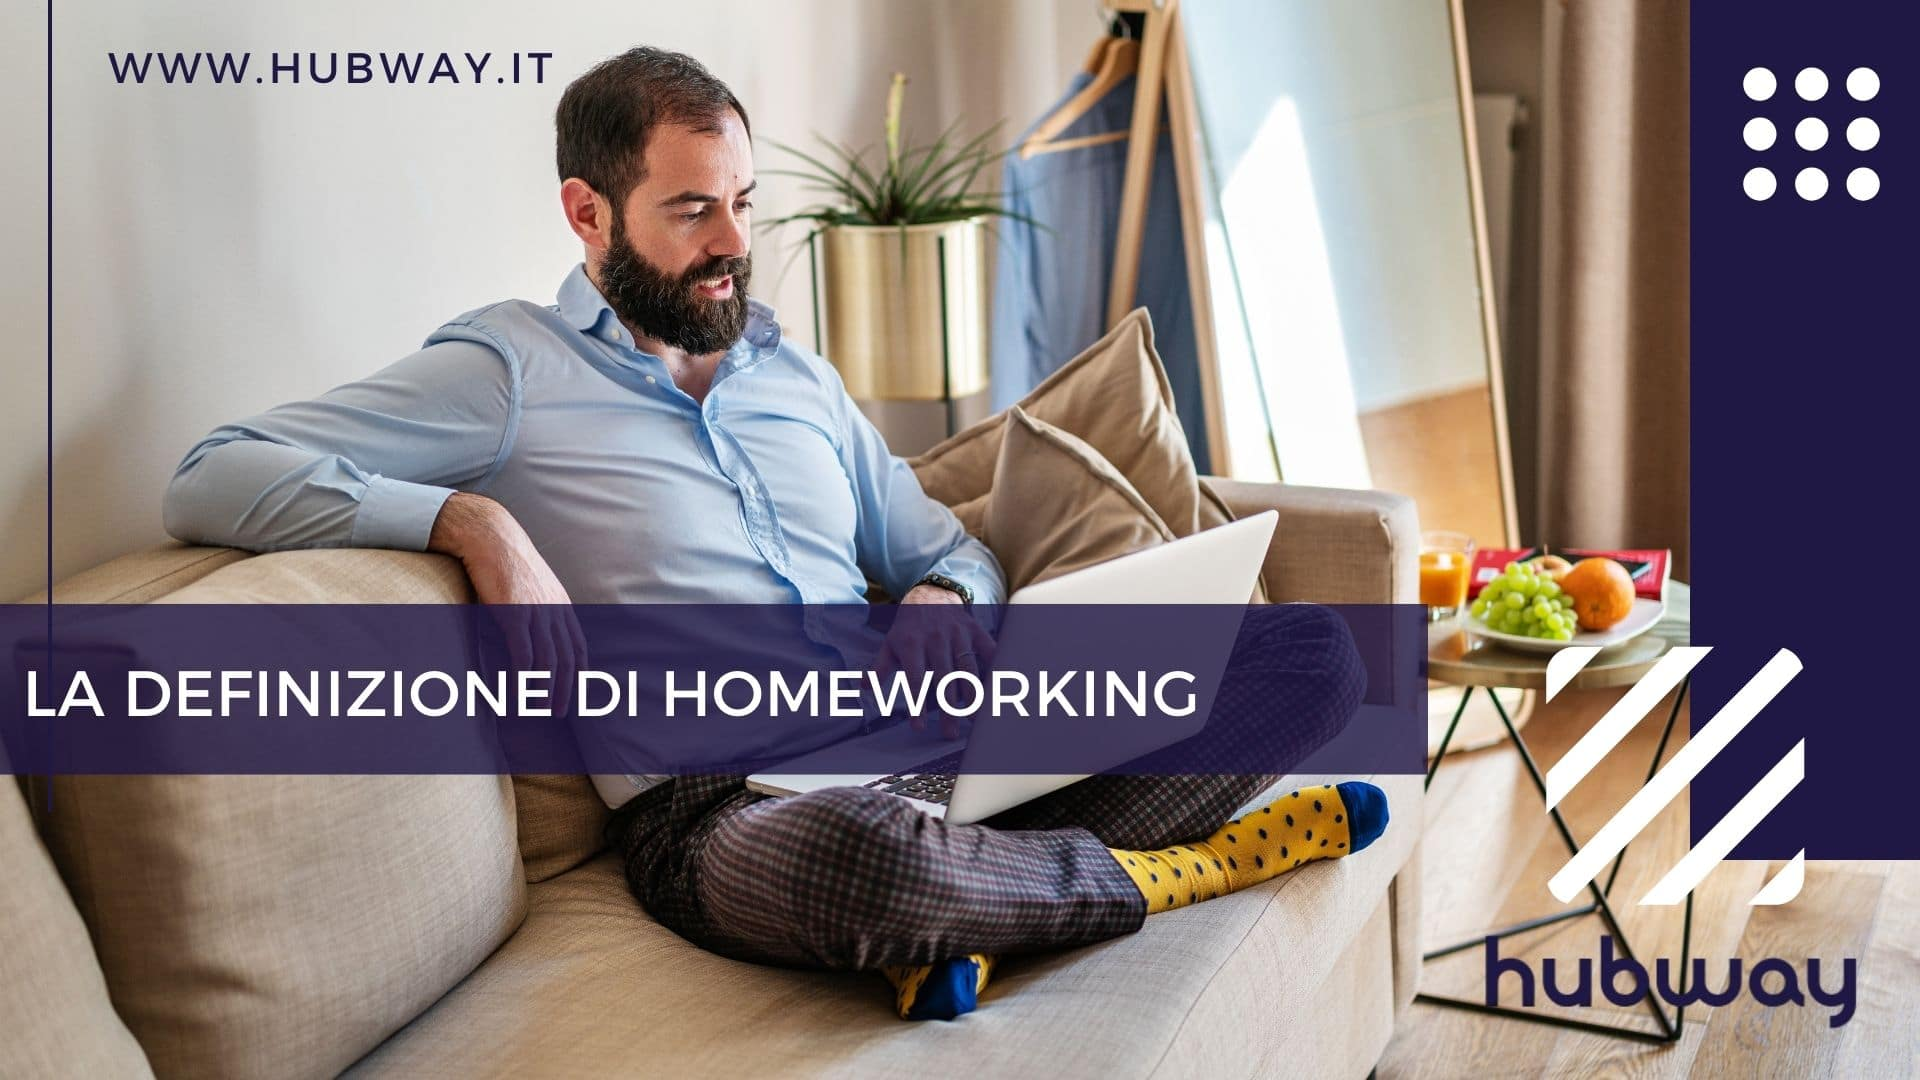 Cos'è lo Smart Working? E L'home working? La definizione corretta